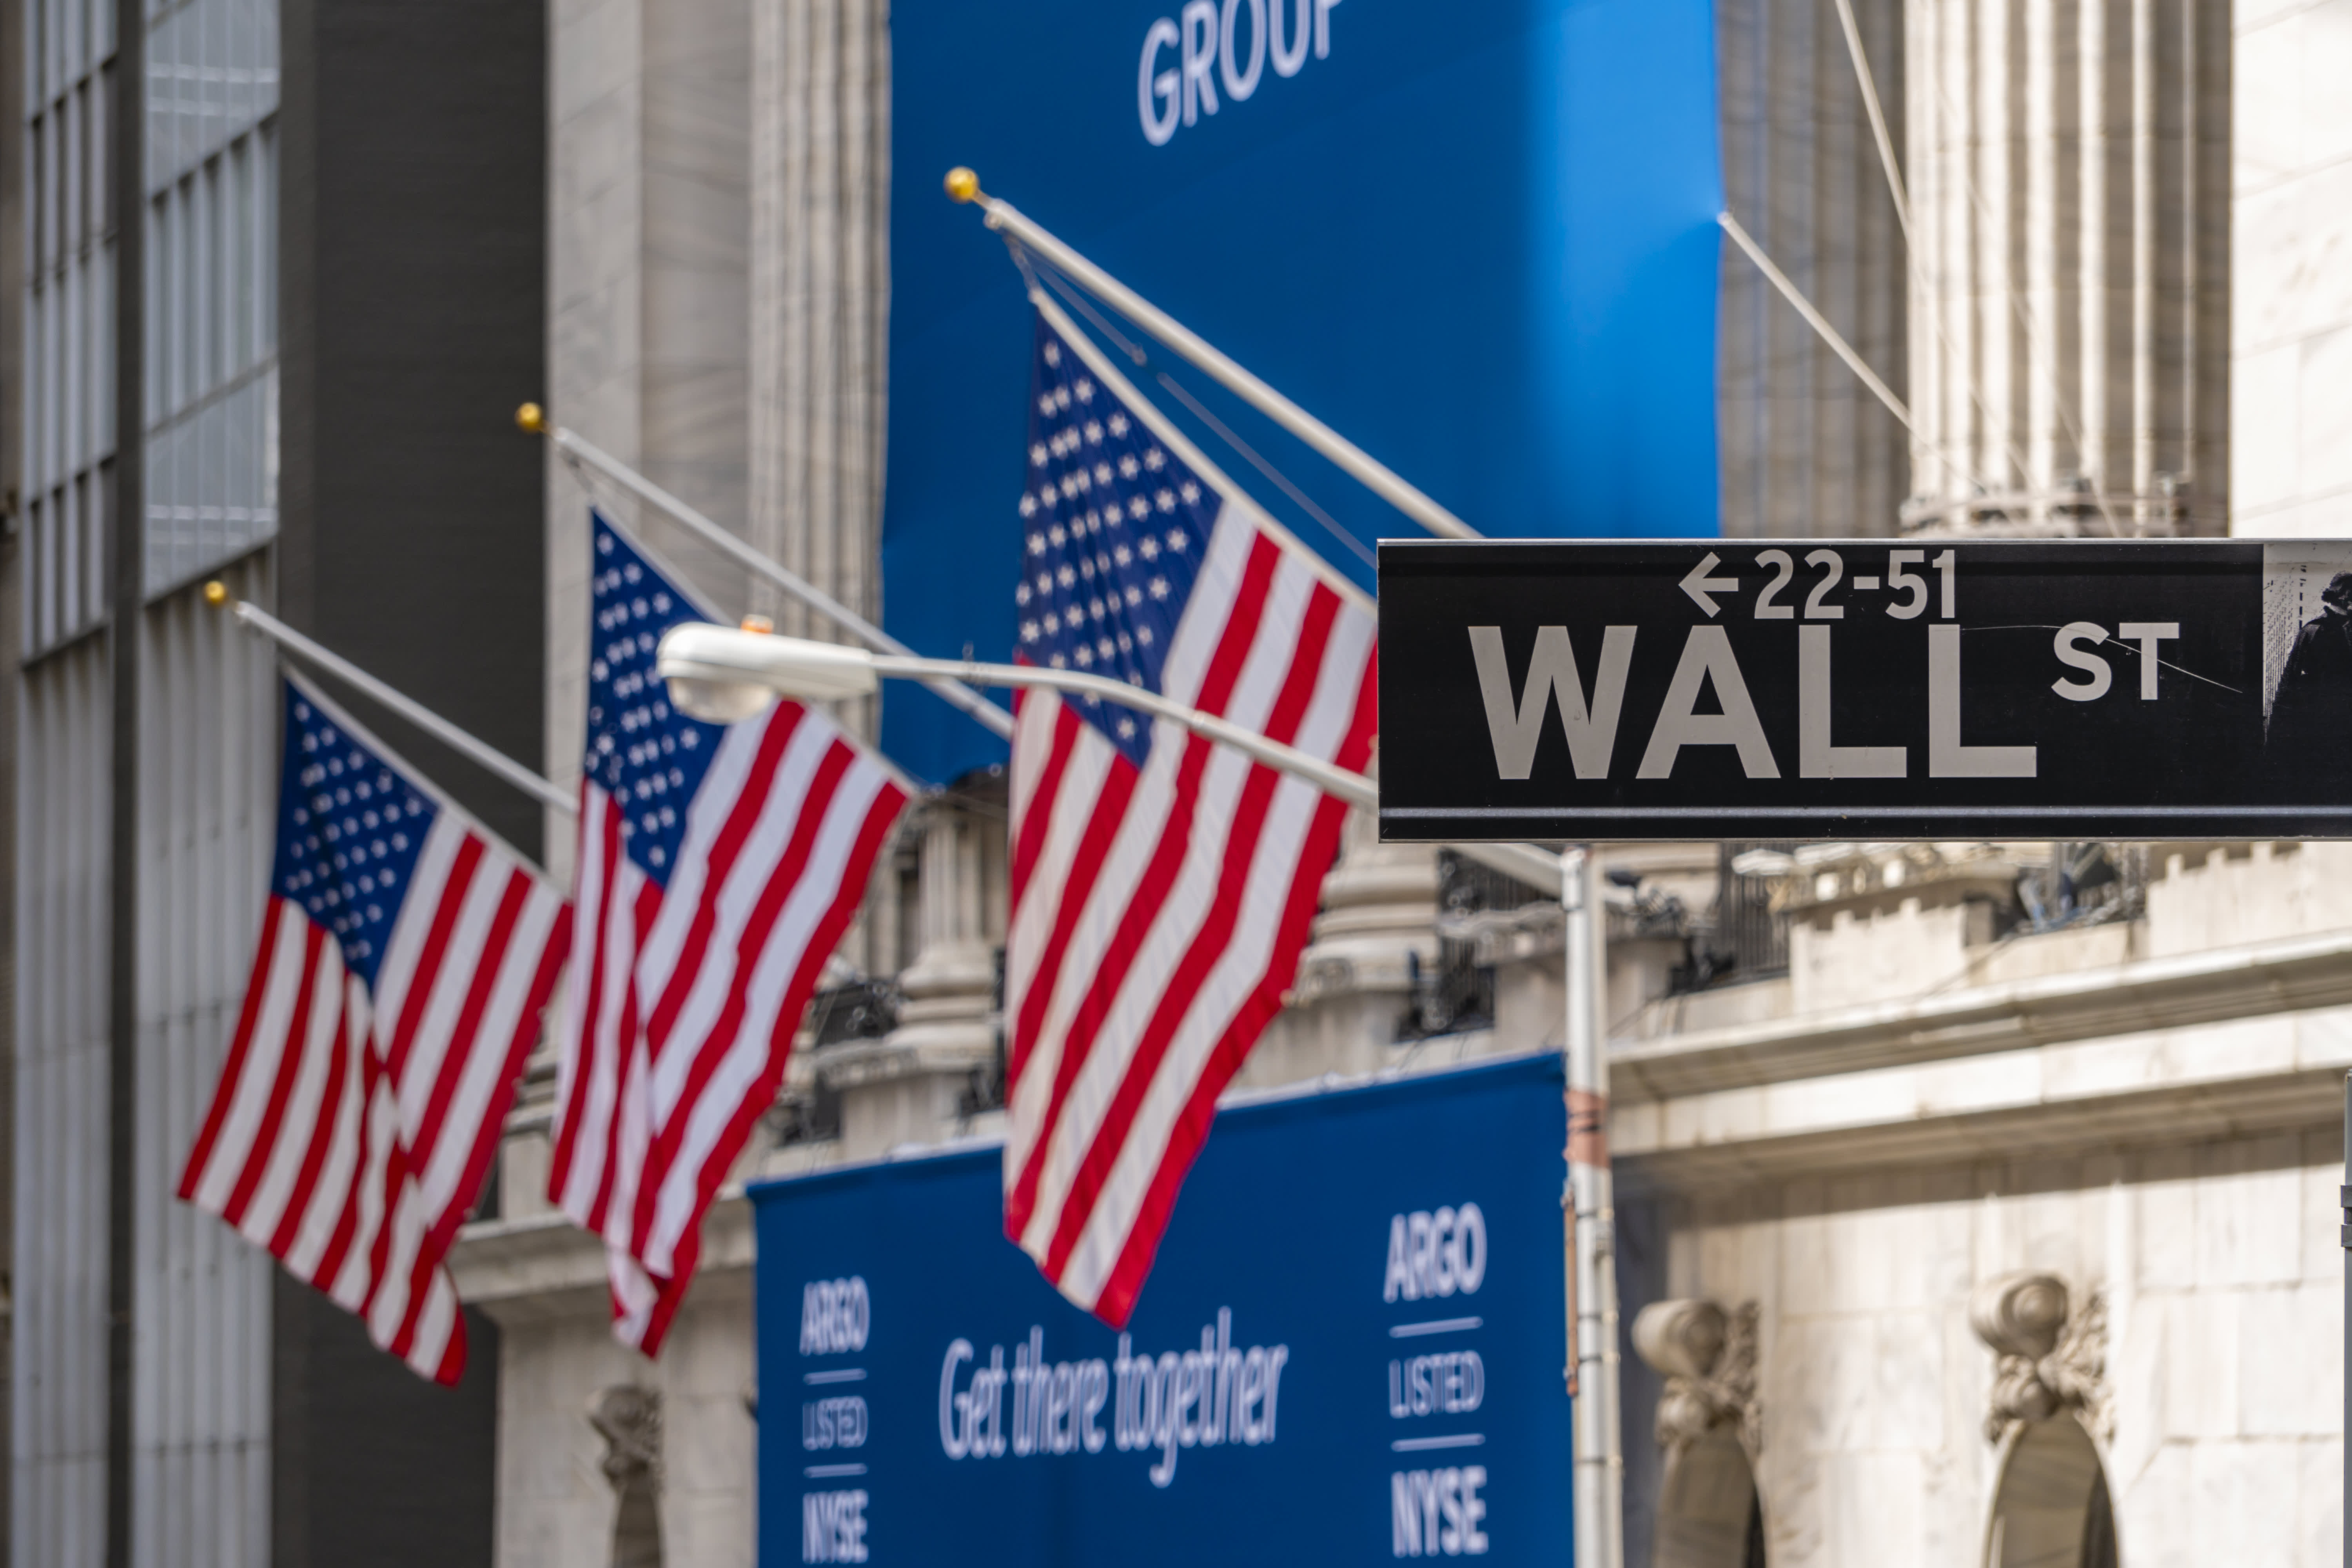 New York, USA - May 8, 2018: Wall Street sign near New York Stock Exchange with flags of the United States. It is the world's most significant financial center.